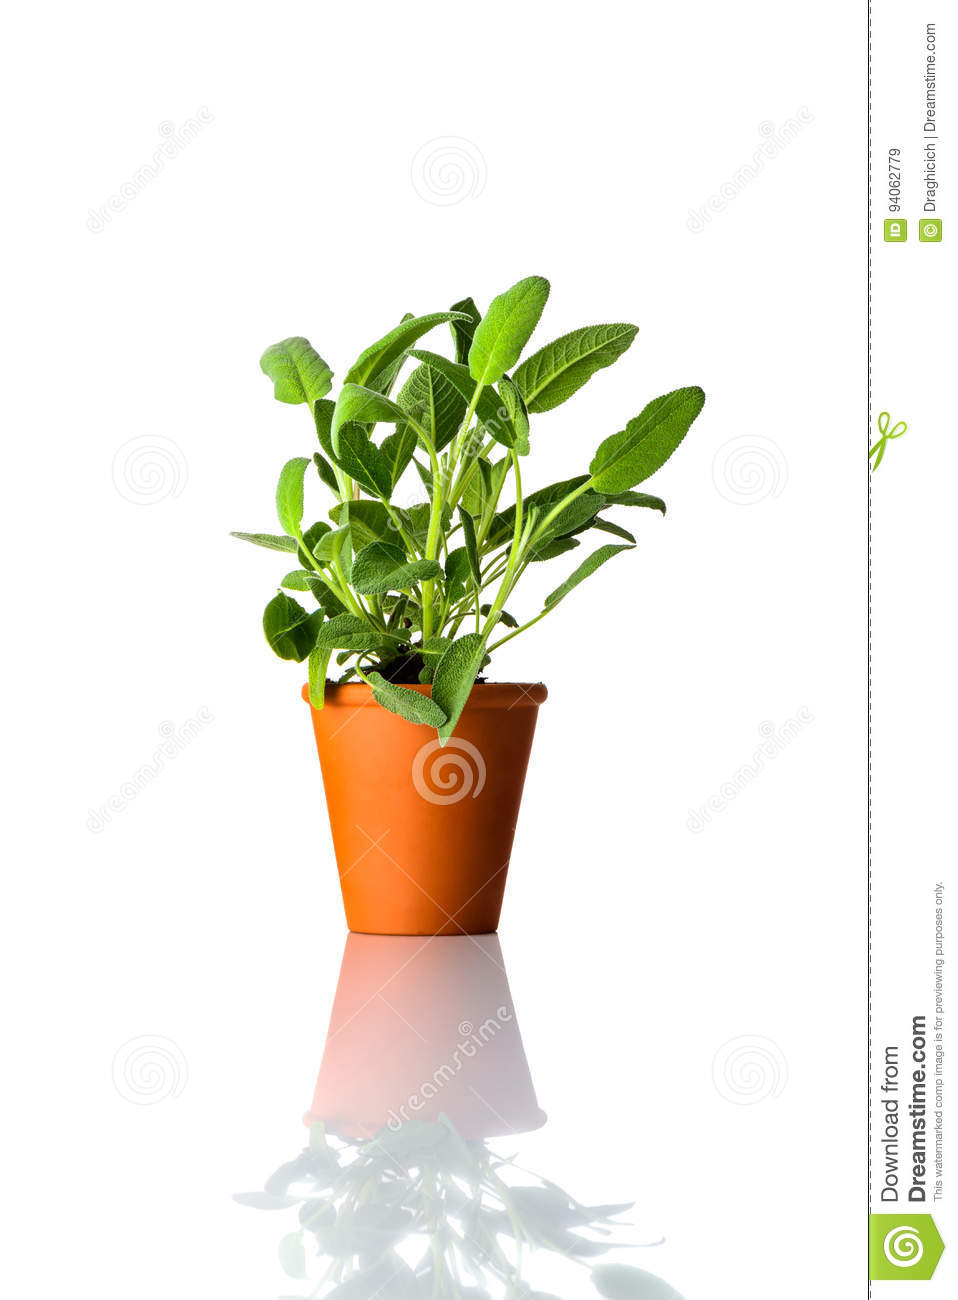 Sage Plant Growing in Pot on White Background